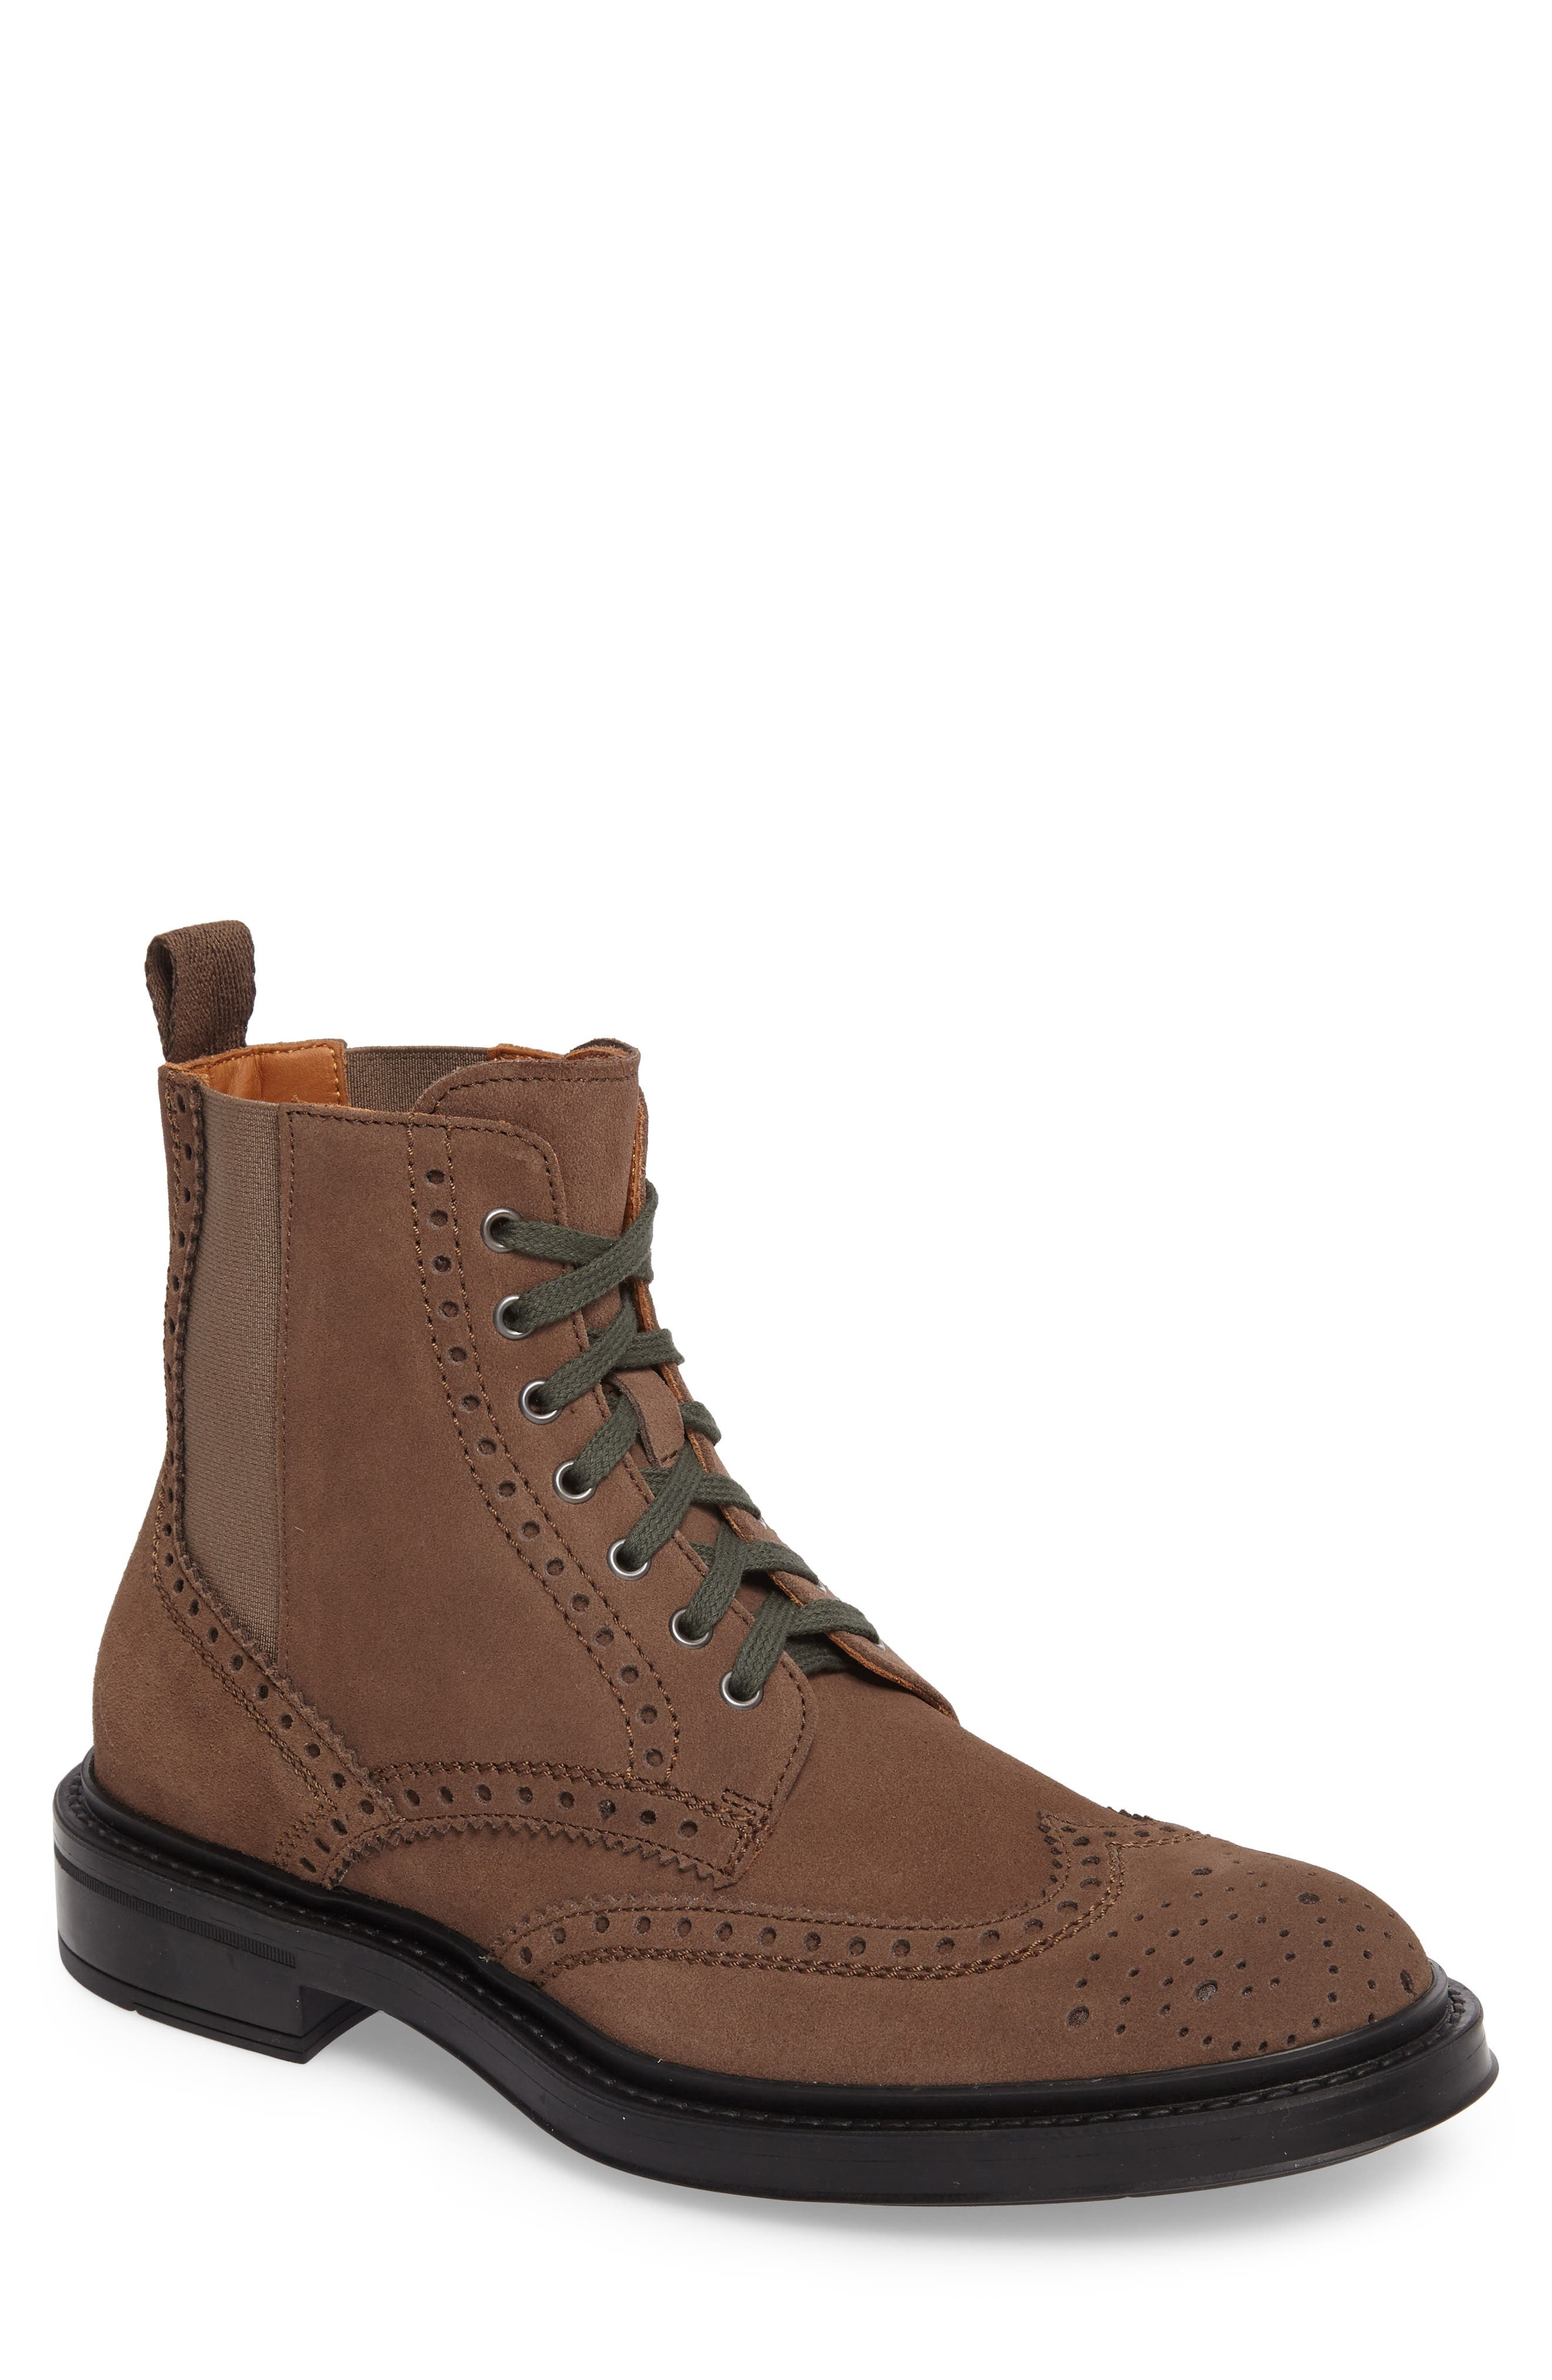 Lawrence Wingtip Boot,                             Main thumbnail 1, color,                             Dark Taupe